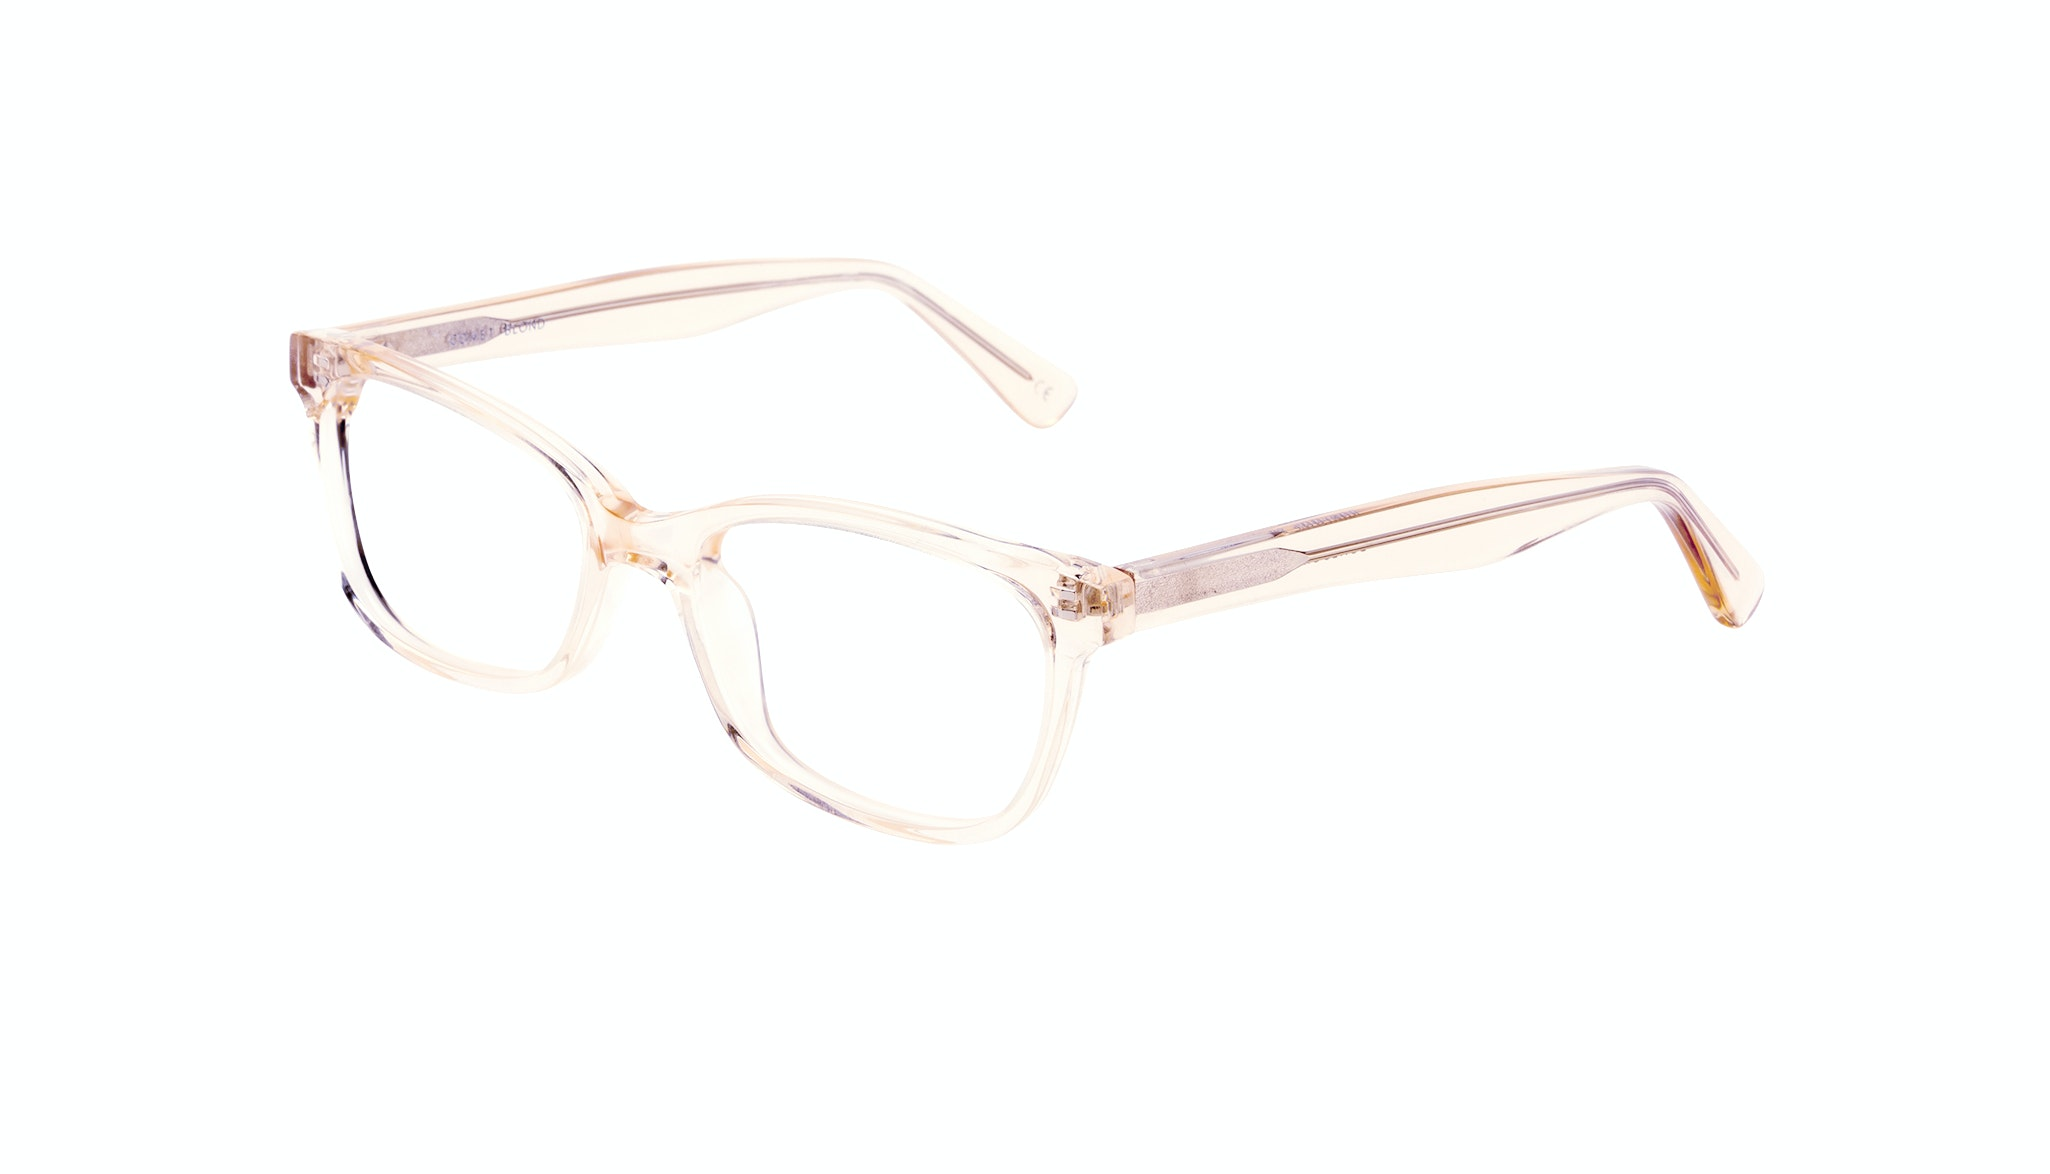 Affordable Fashion Glasses Cat Eye Rectangle Square Eyeglasses Women Comet Blond Tilt